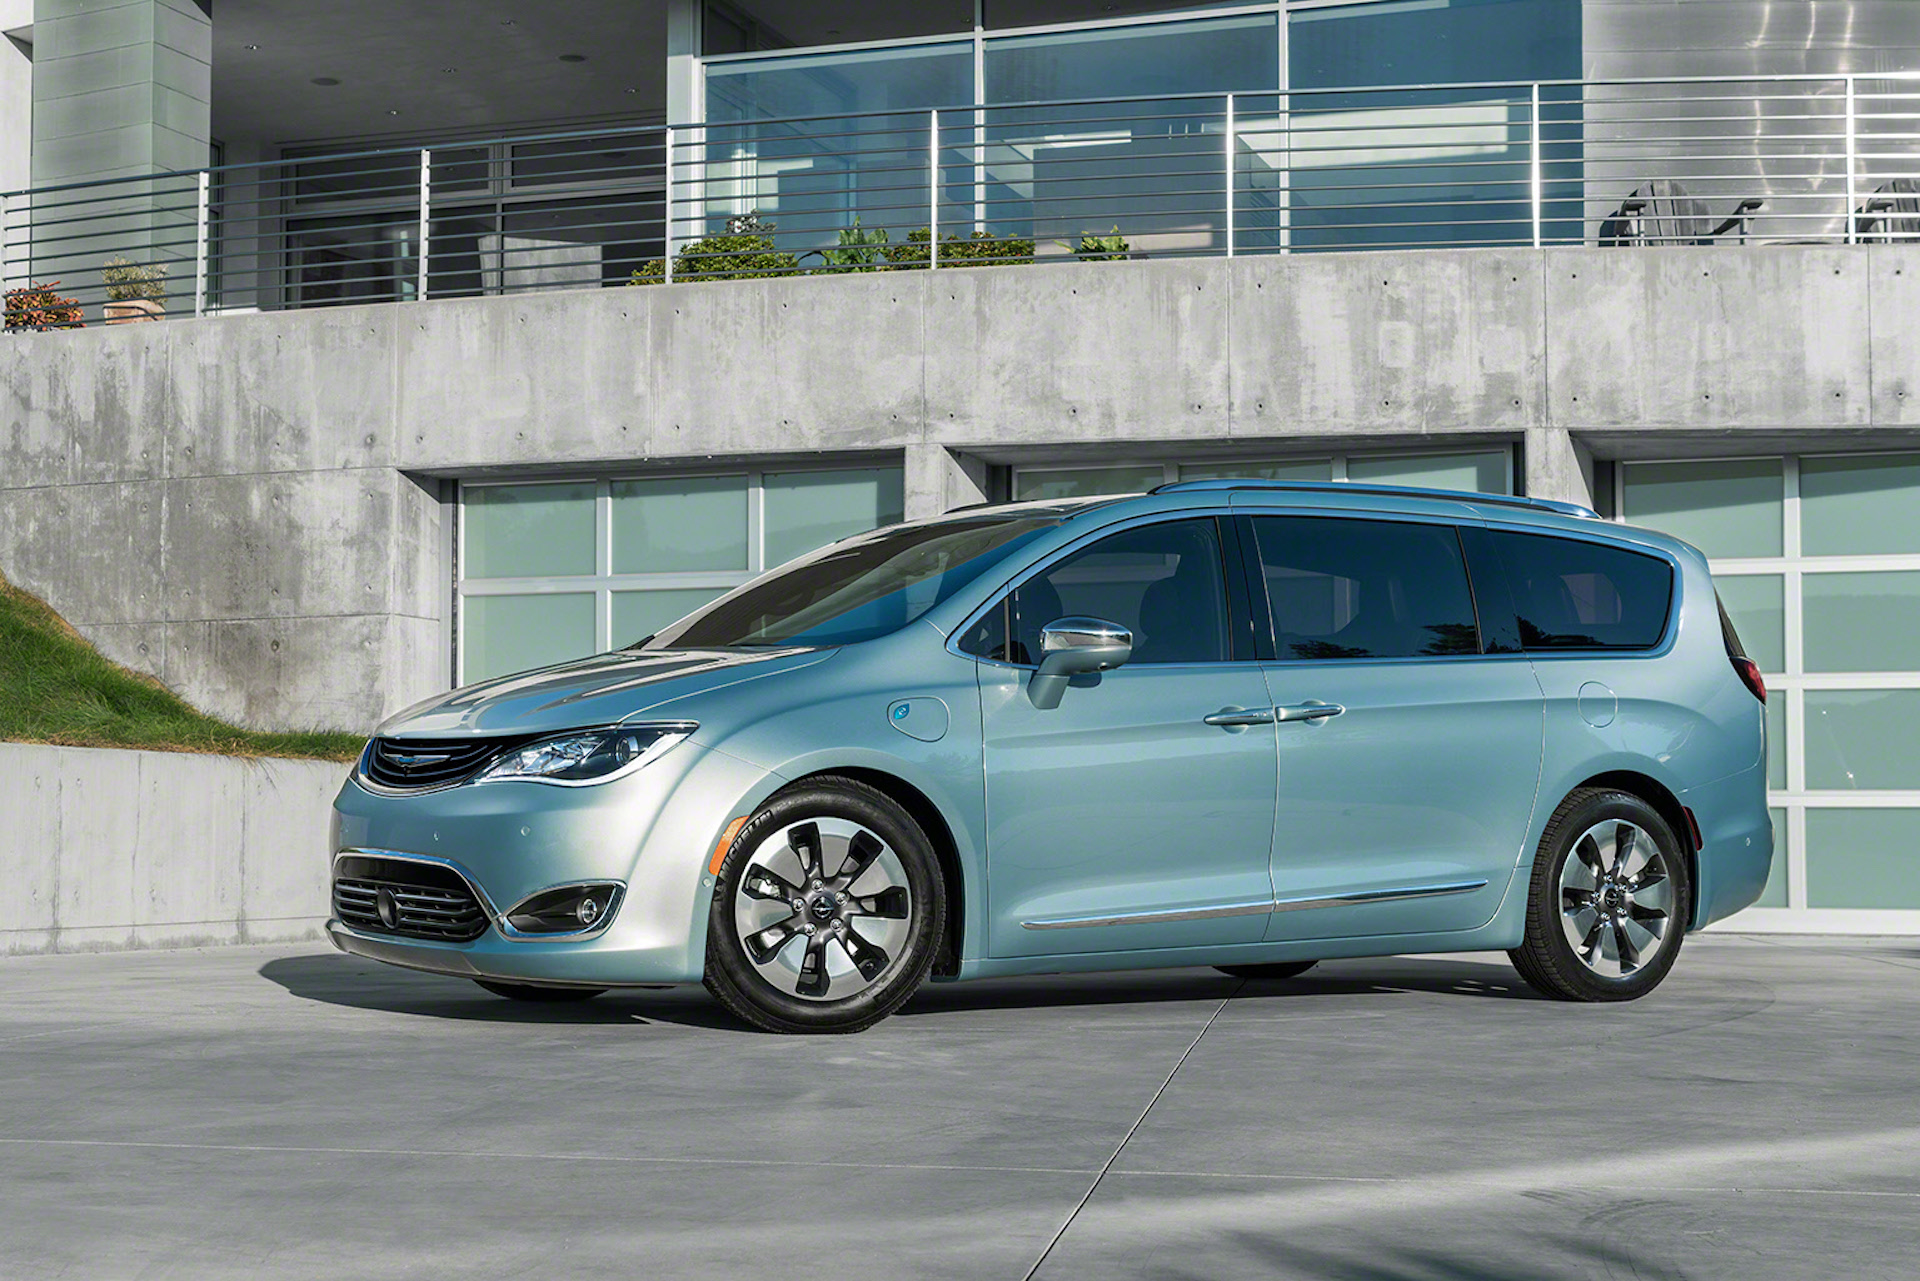 Image result for chrysler pacifica hybrid